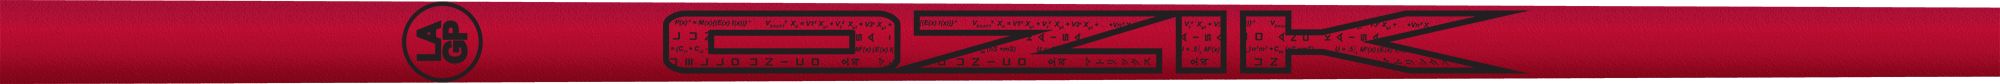 Ozik TPHDe: Candy Apple Red Black Textured - Wood 71 XX